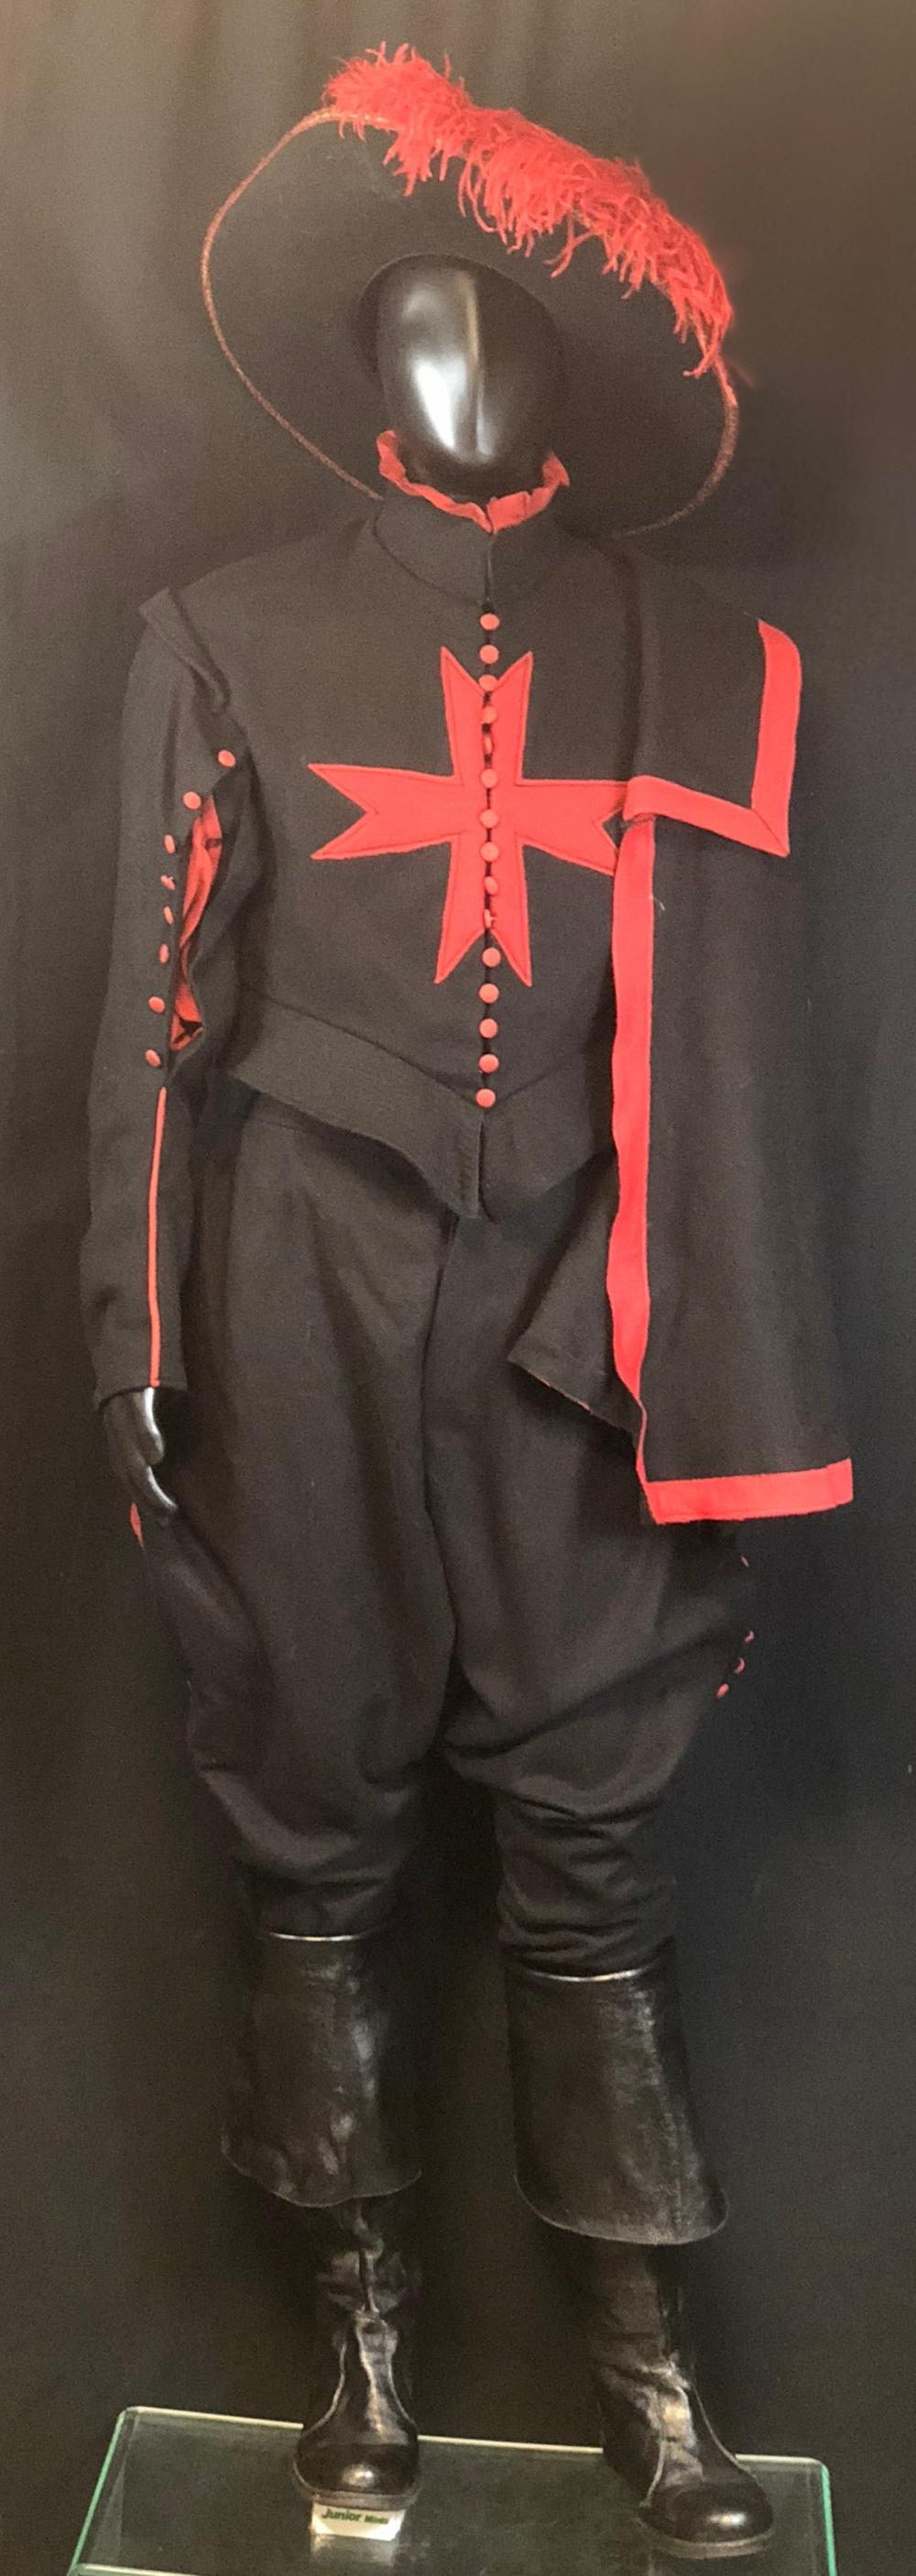 The Three Musketeers (2011) - Cardinal Guard Costume